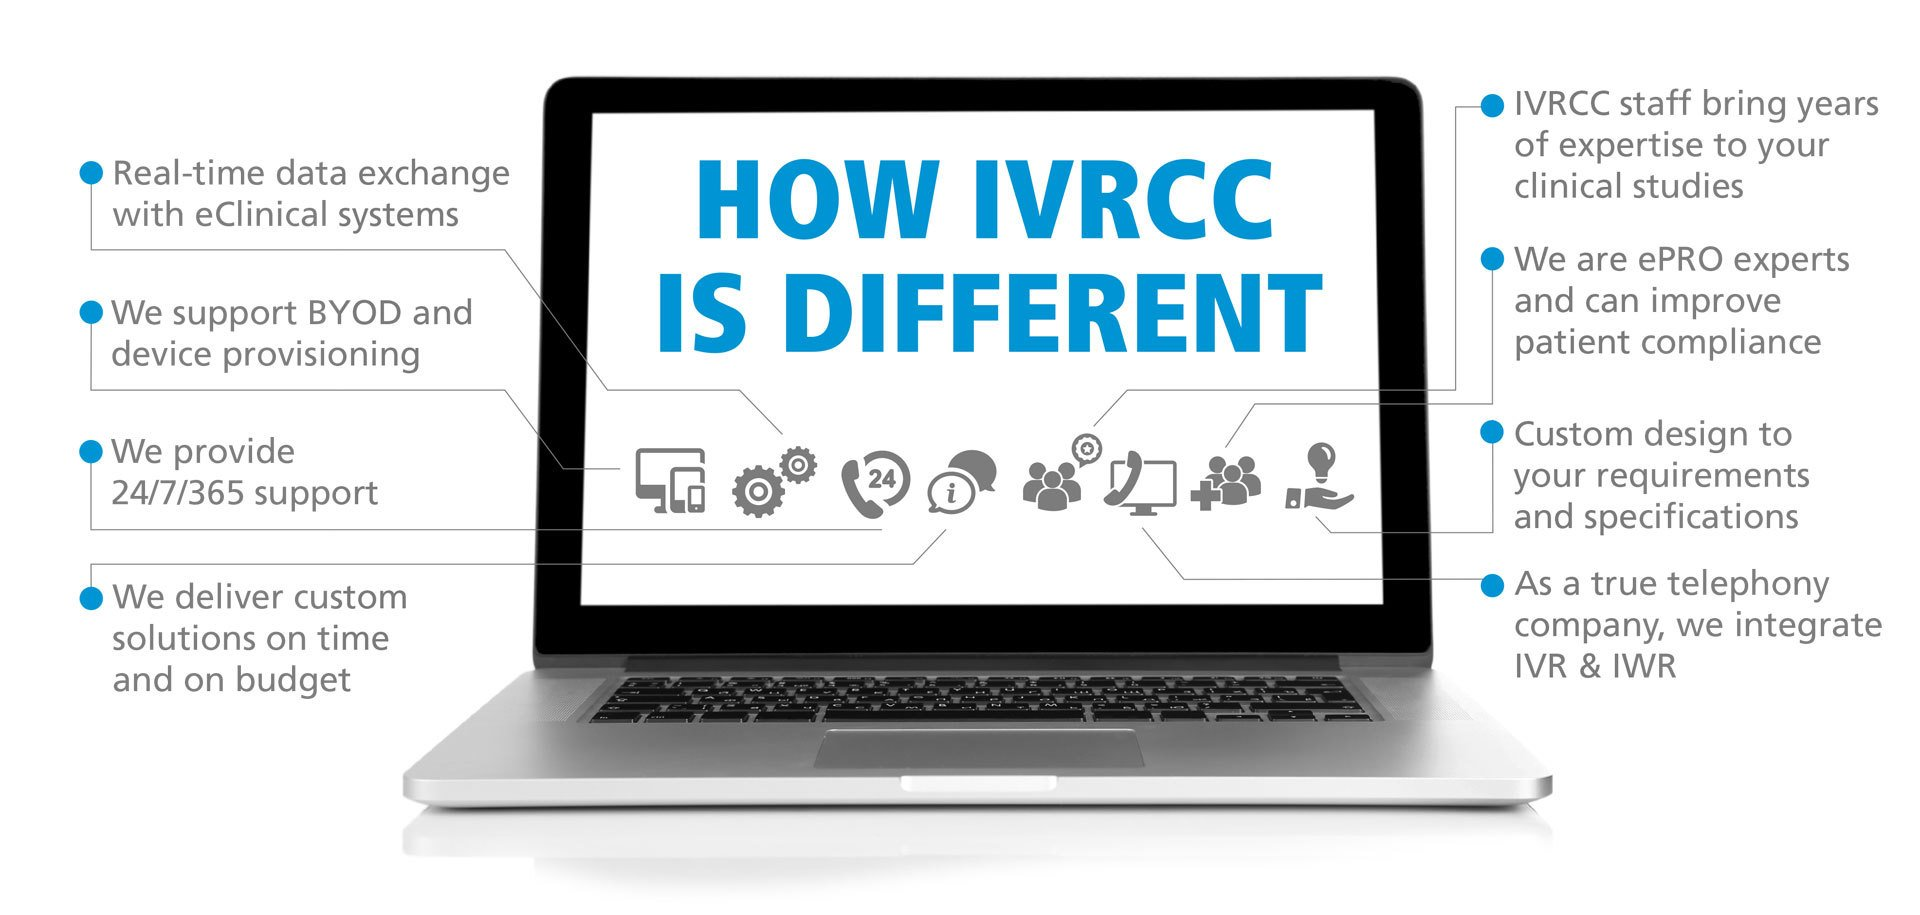 Learn how IVRCC is different